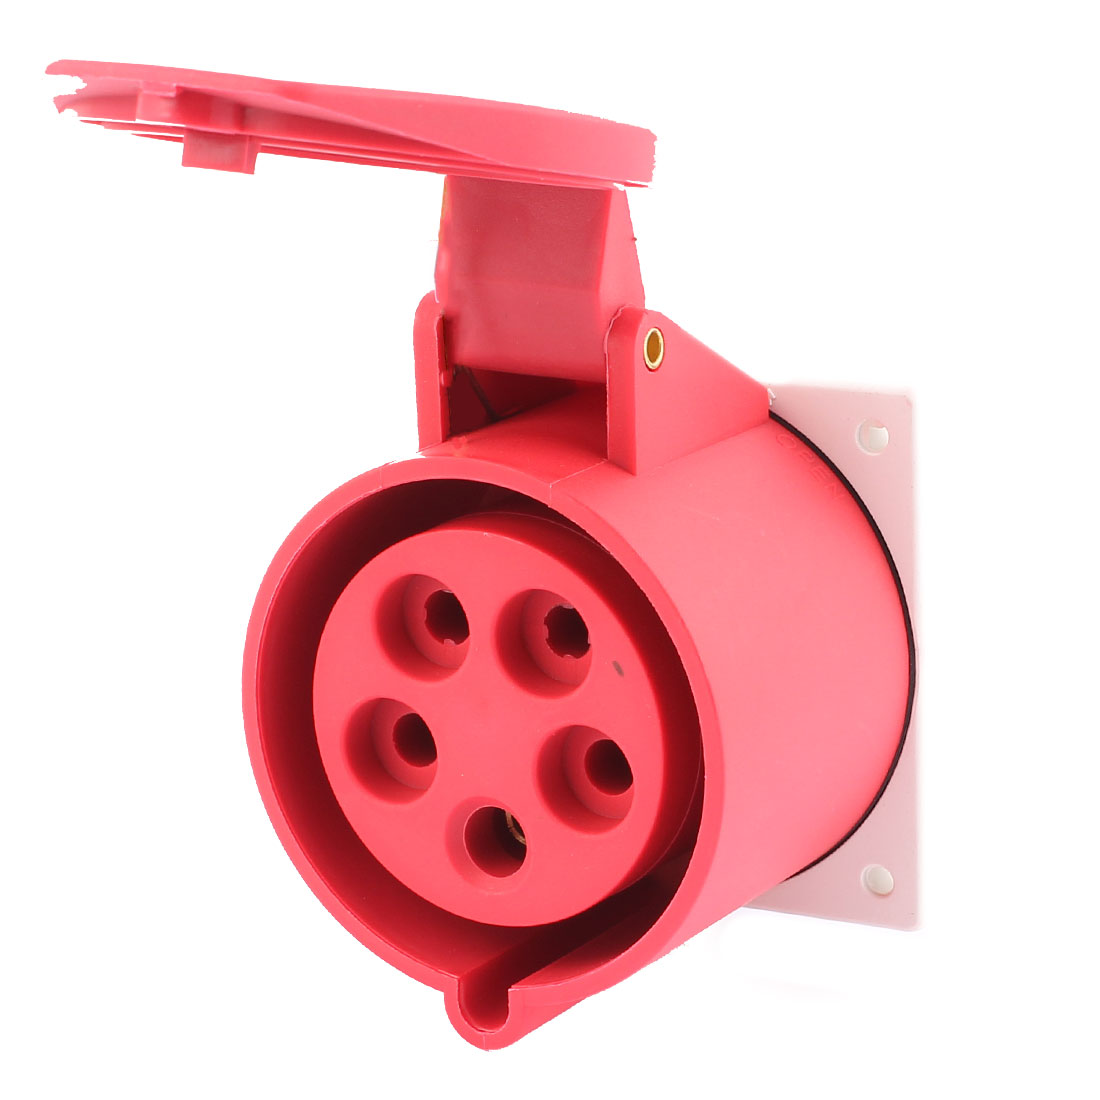 AC 220V-415V 32A IP44 3P+N+E 5-Terminal Female Industrial Conceal Straight Socket